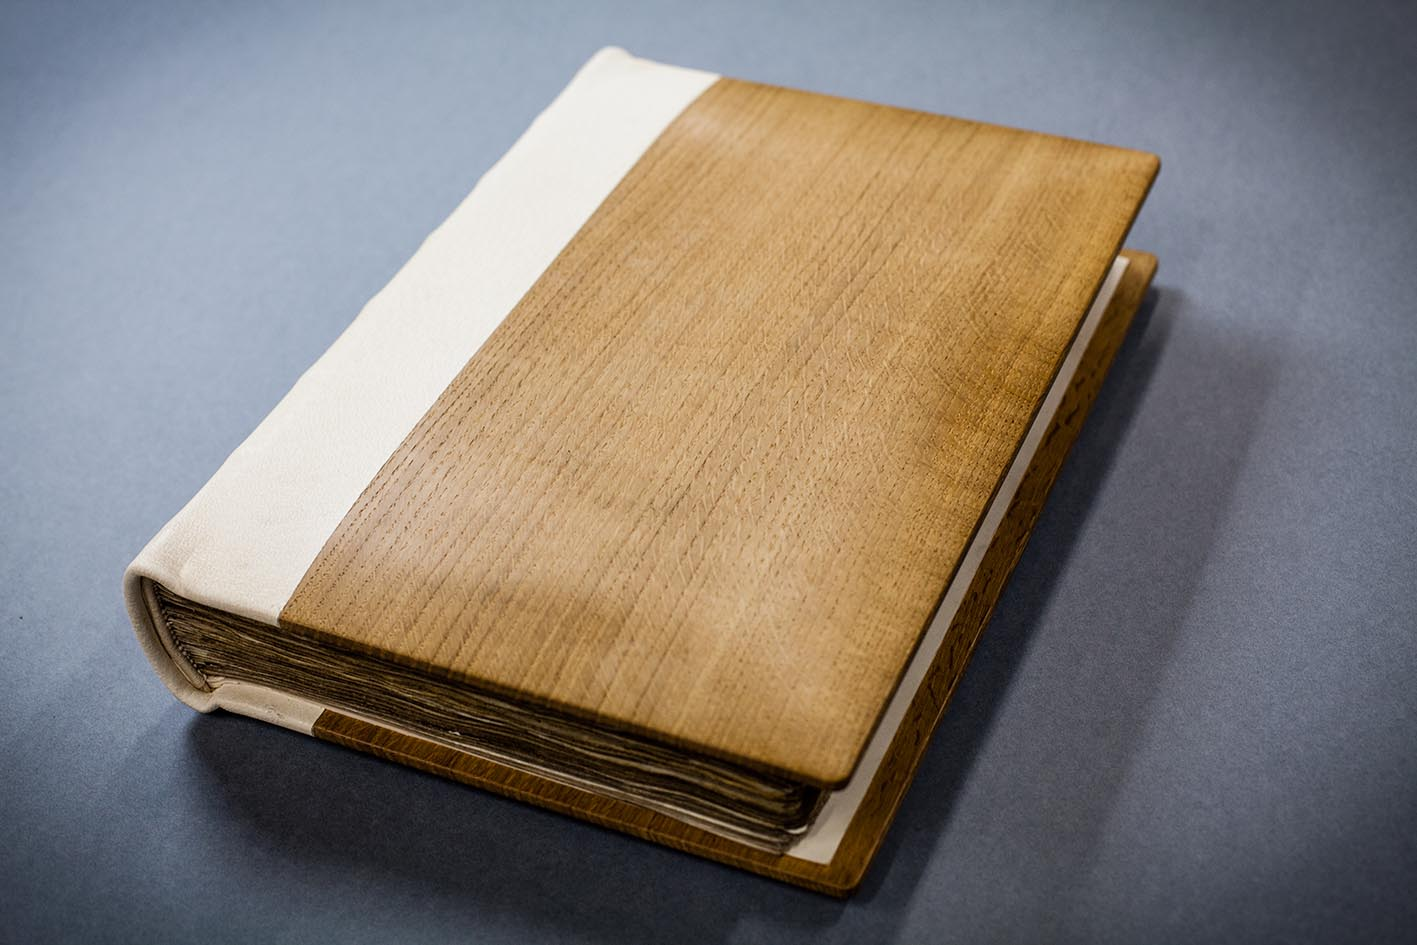 Colour photograph of Great Domesday Book, rebound in 1986 with a light brown cover